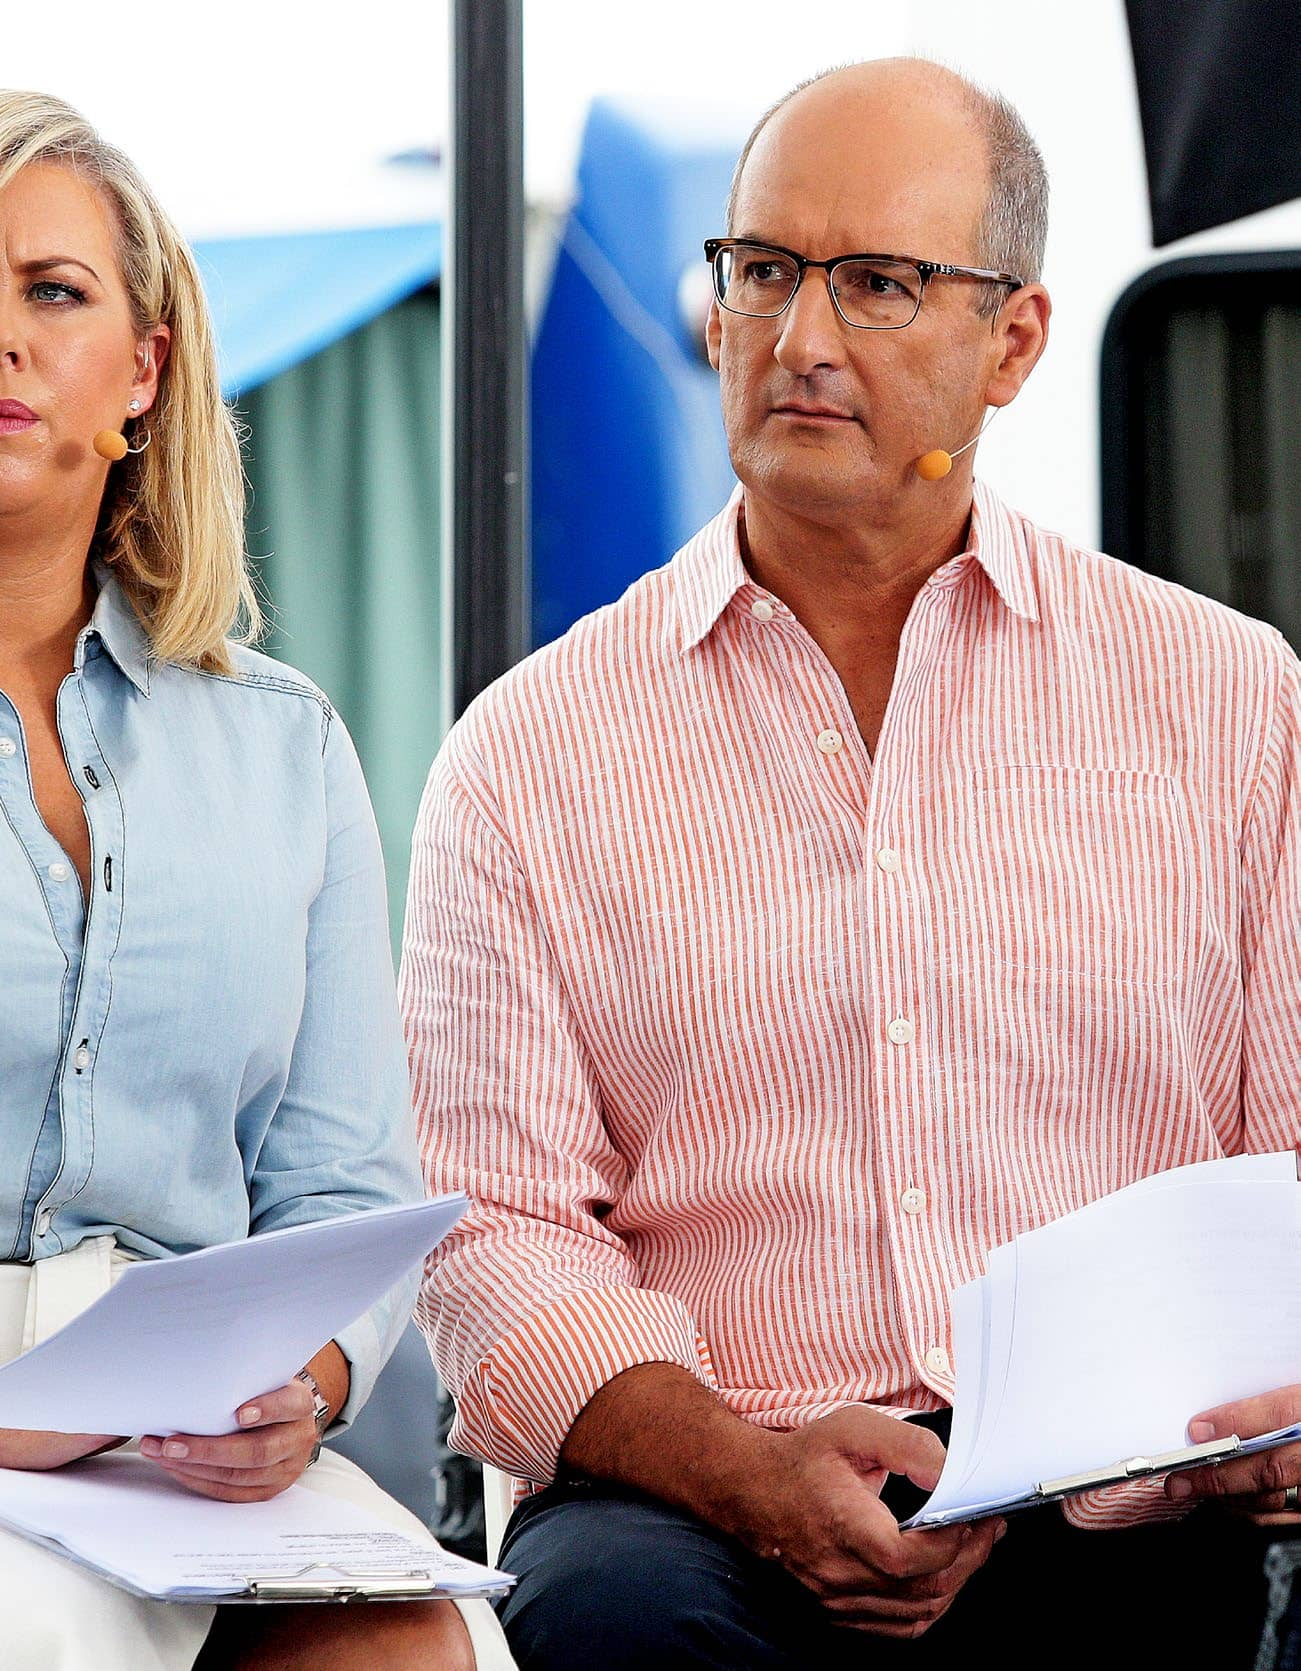 KOCHIE'S WEEK FROM HELL!